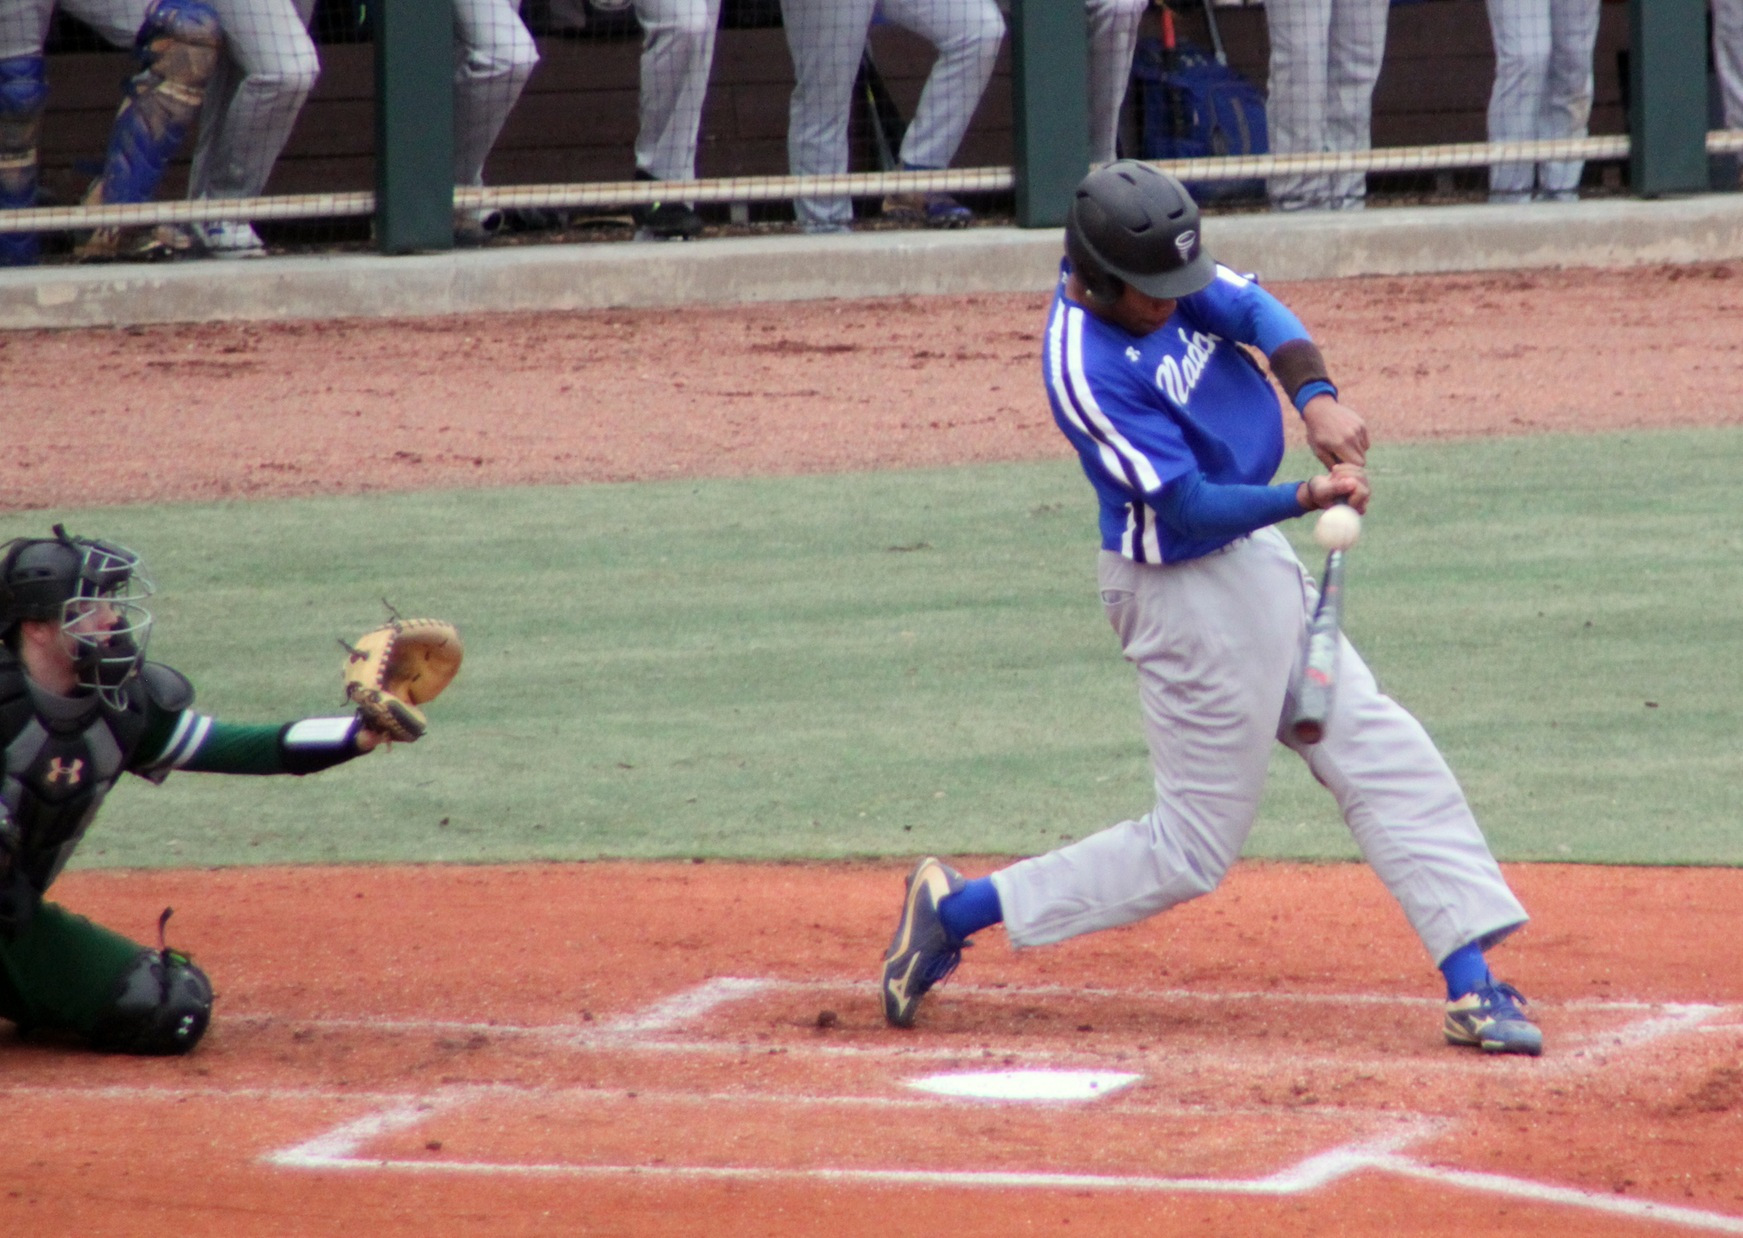 JJ Wilkes drove in a run on an RBI double on Sunday at Gil Coan Field (Photo courtesy of Judy Victory).